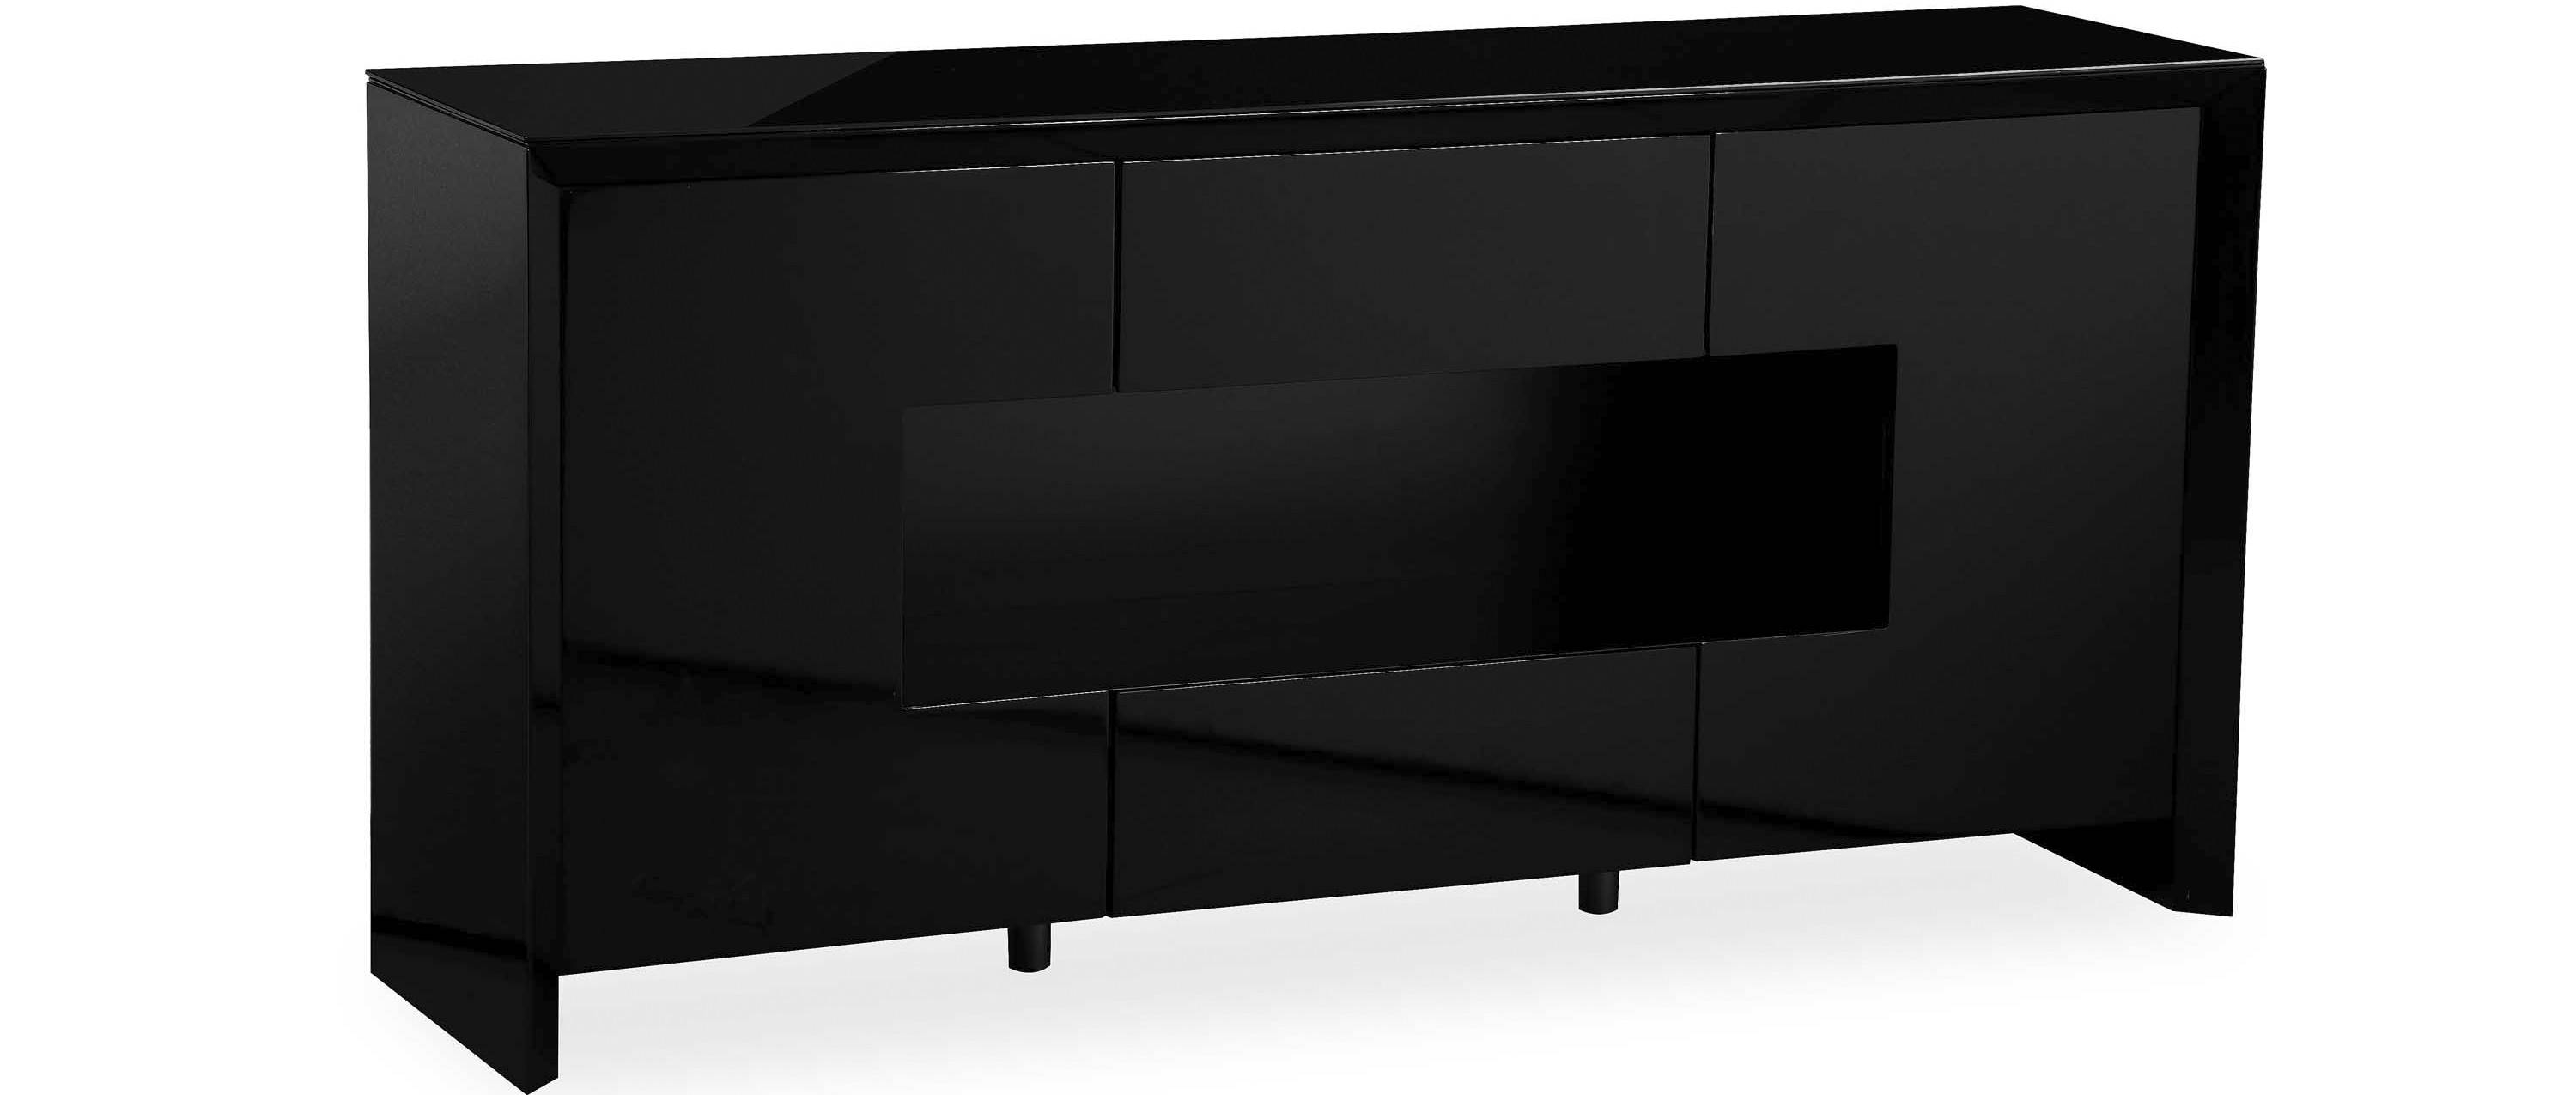 Soho - L.e.d. Display Sideboard - Black High Gloss regarding High Gloss Black Sideboards (Image 29 of 30)